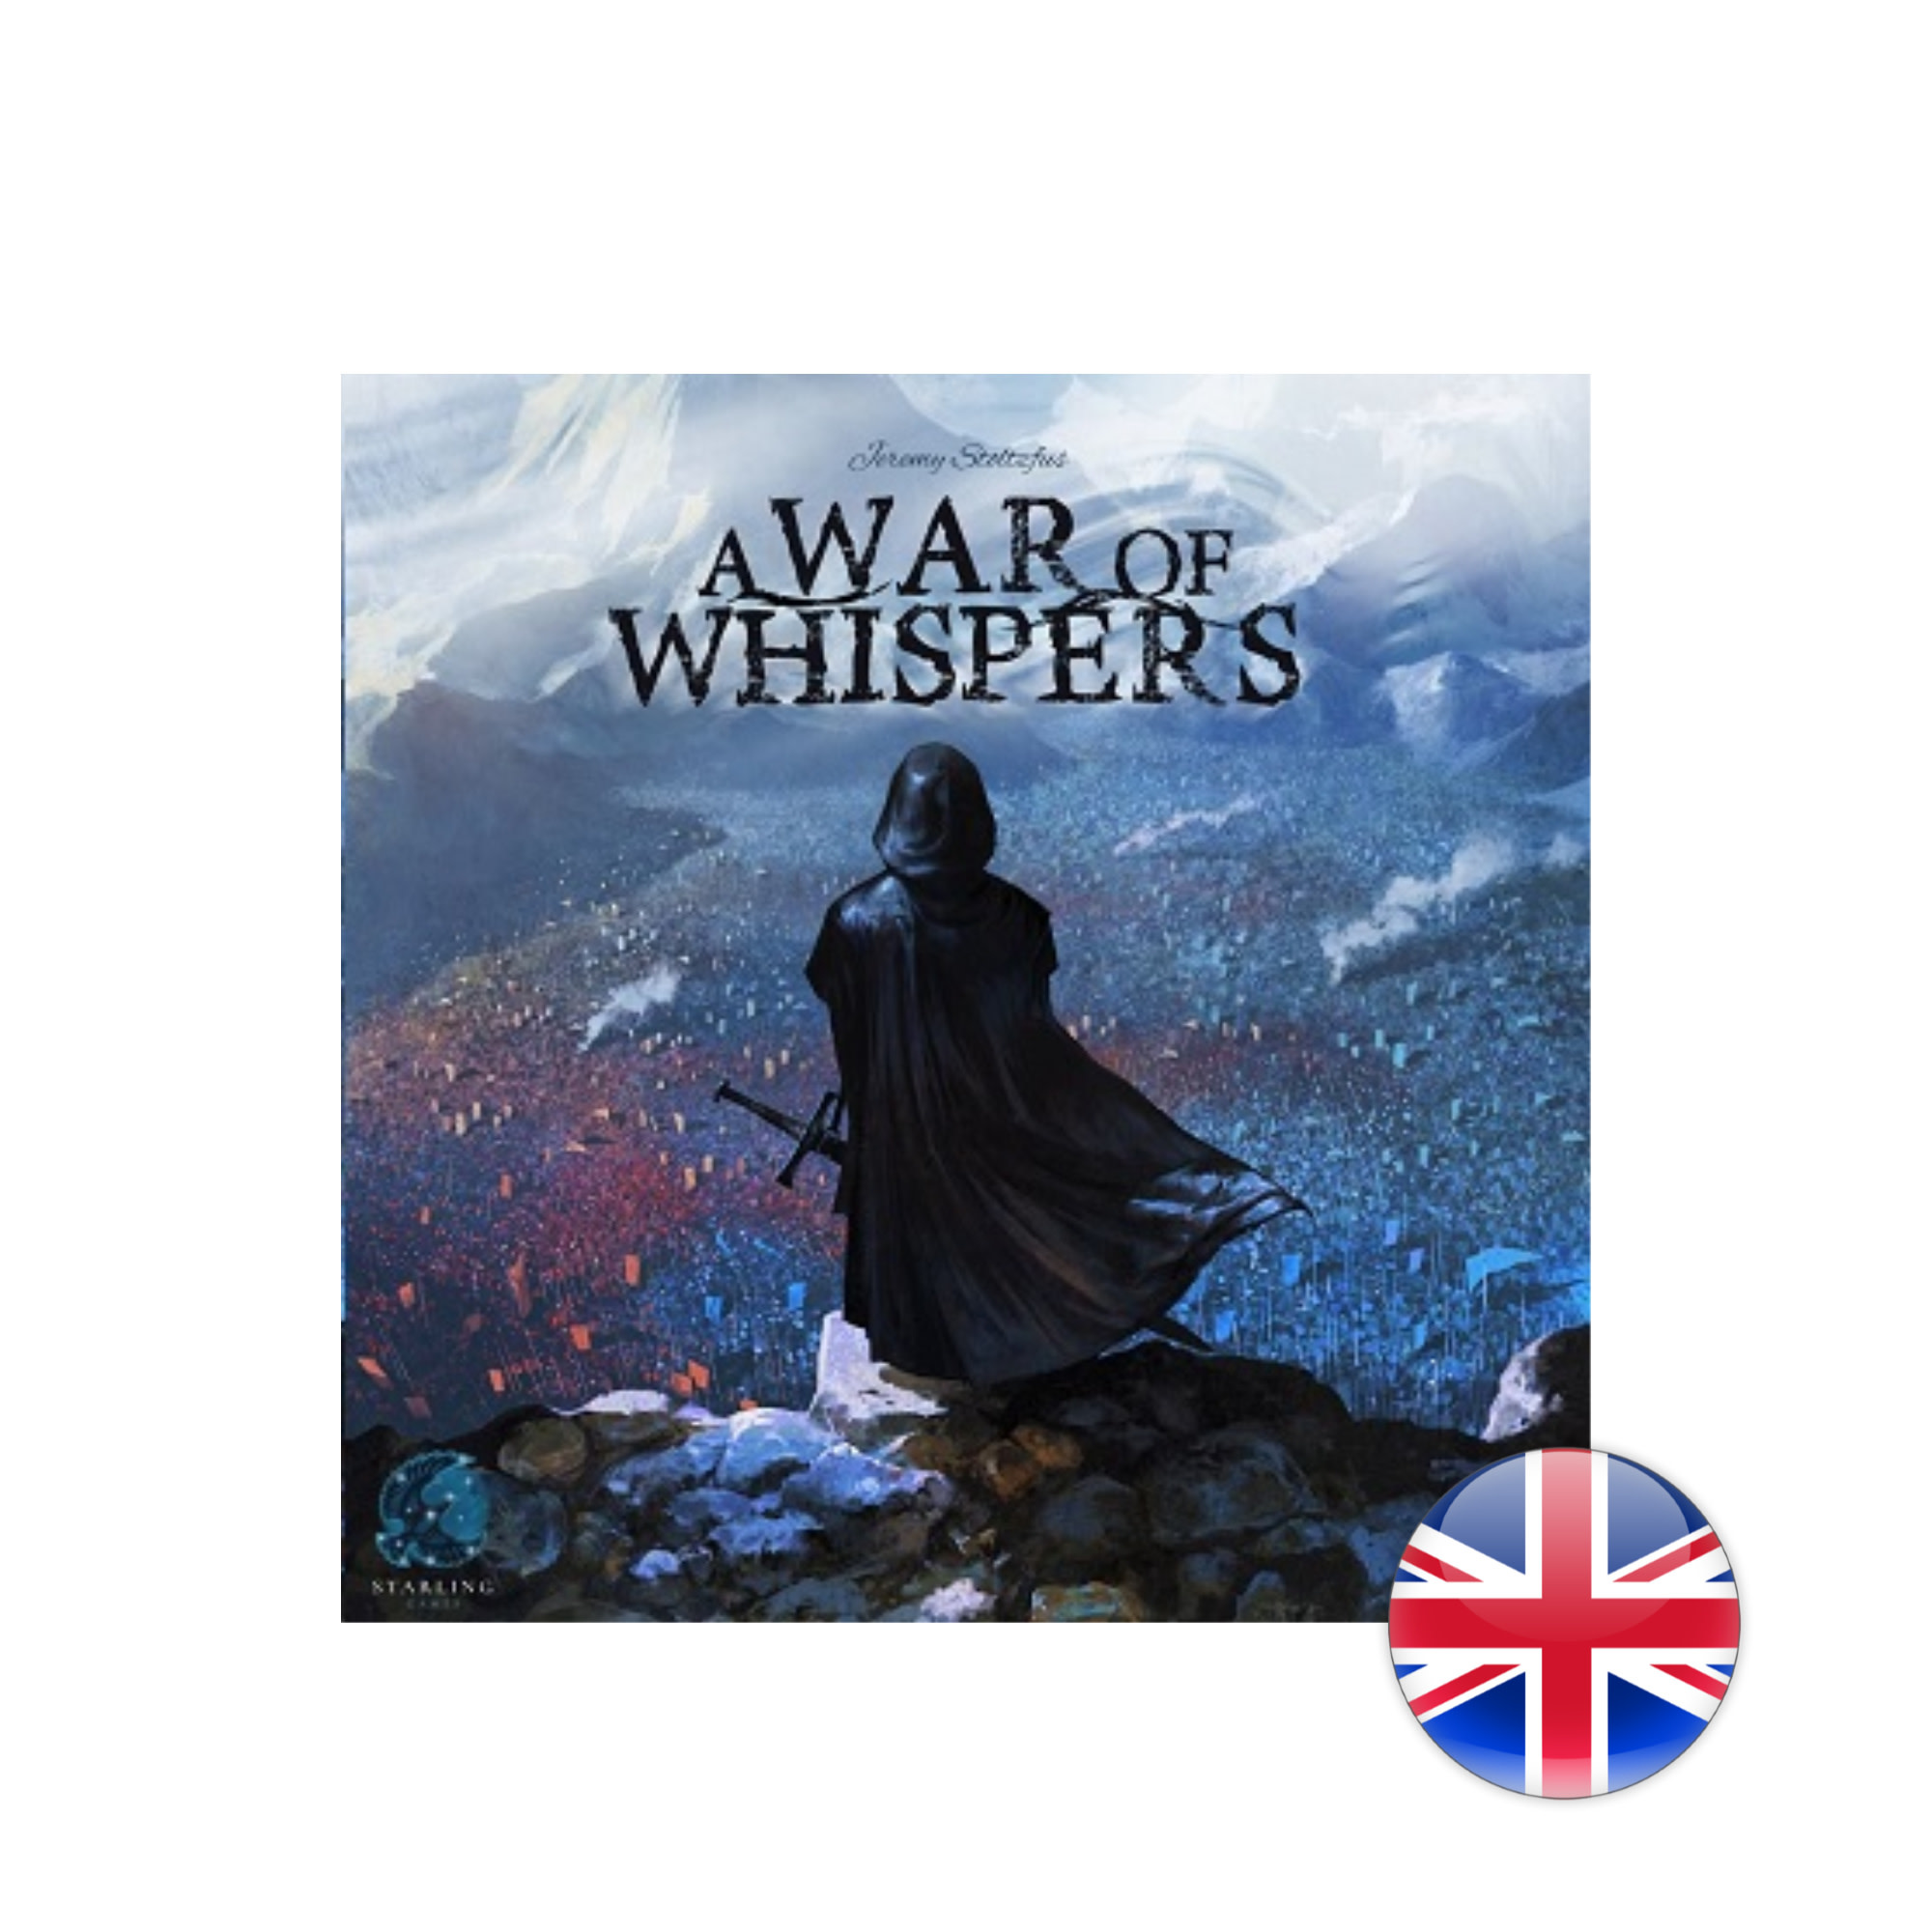 Starling games A War of Whispers